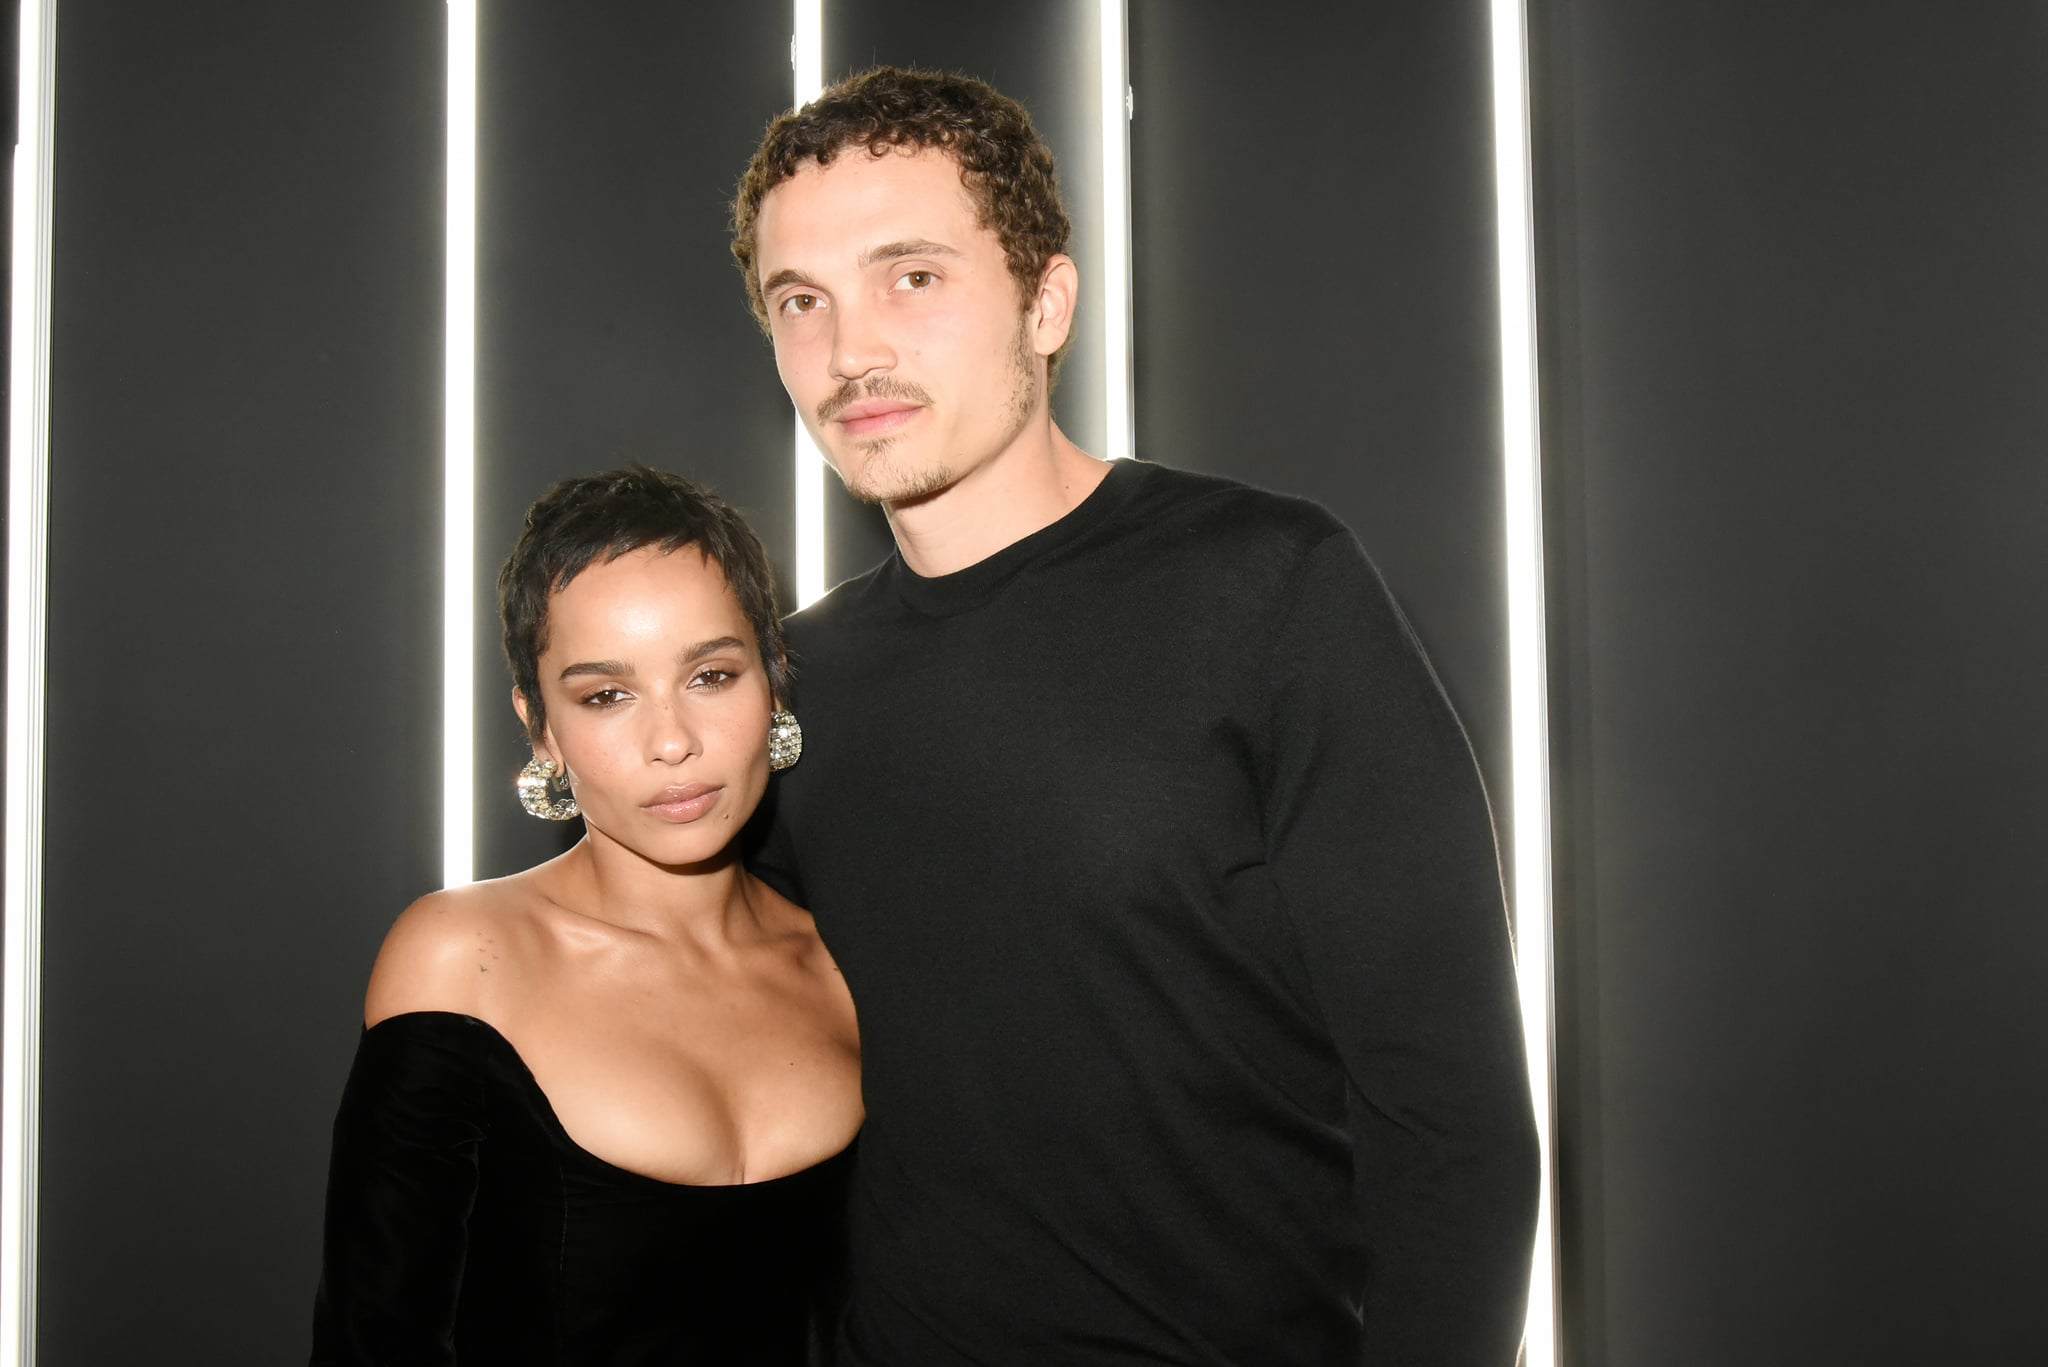 PARIS, FRANCE - JANUARY 17:  Zoe Kravitz and Karl Glusman attend YSL Beauty Party During Paris Fashion Week Menswear Fall/Winter 2018-2019 on January 17, 2018 in Paris, France.  (Photo by Foc Kan/WireImage)